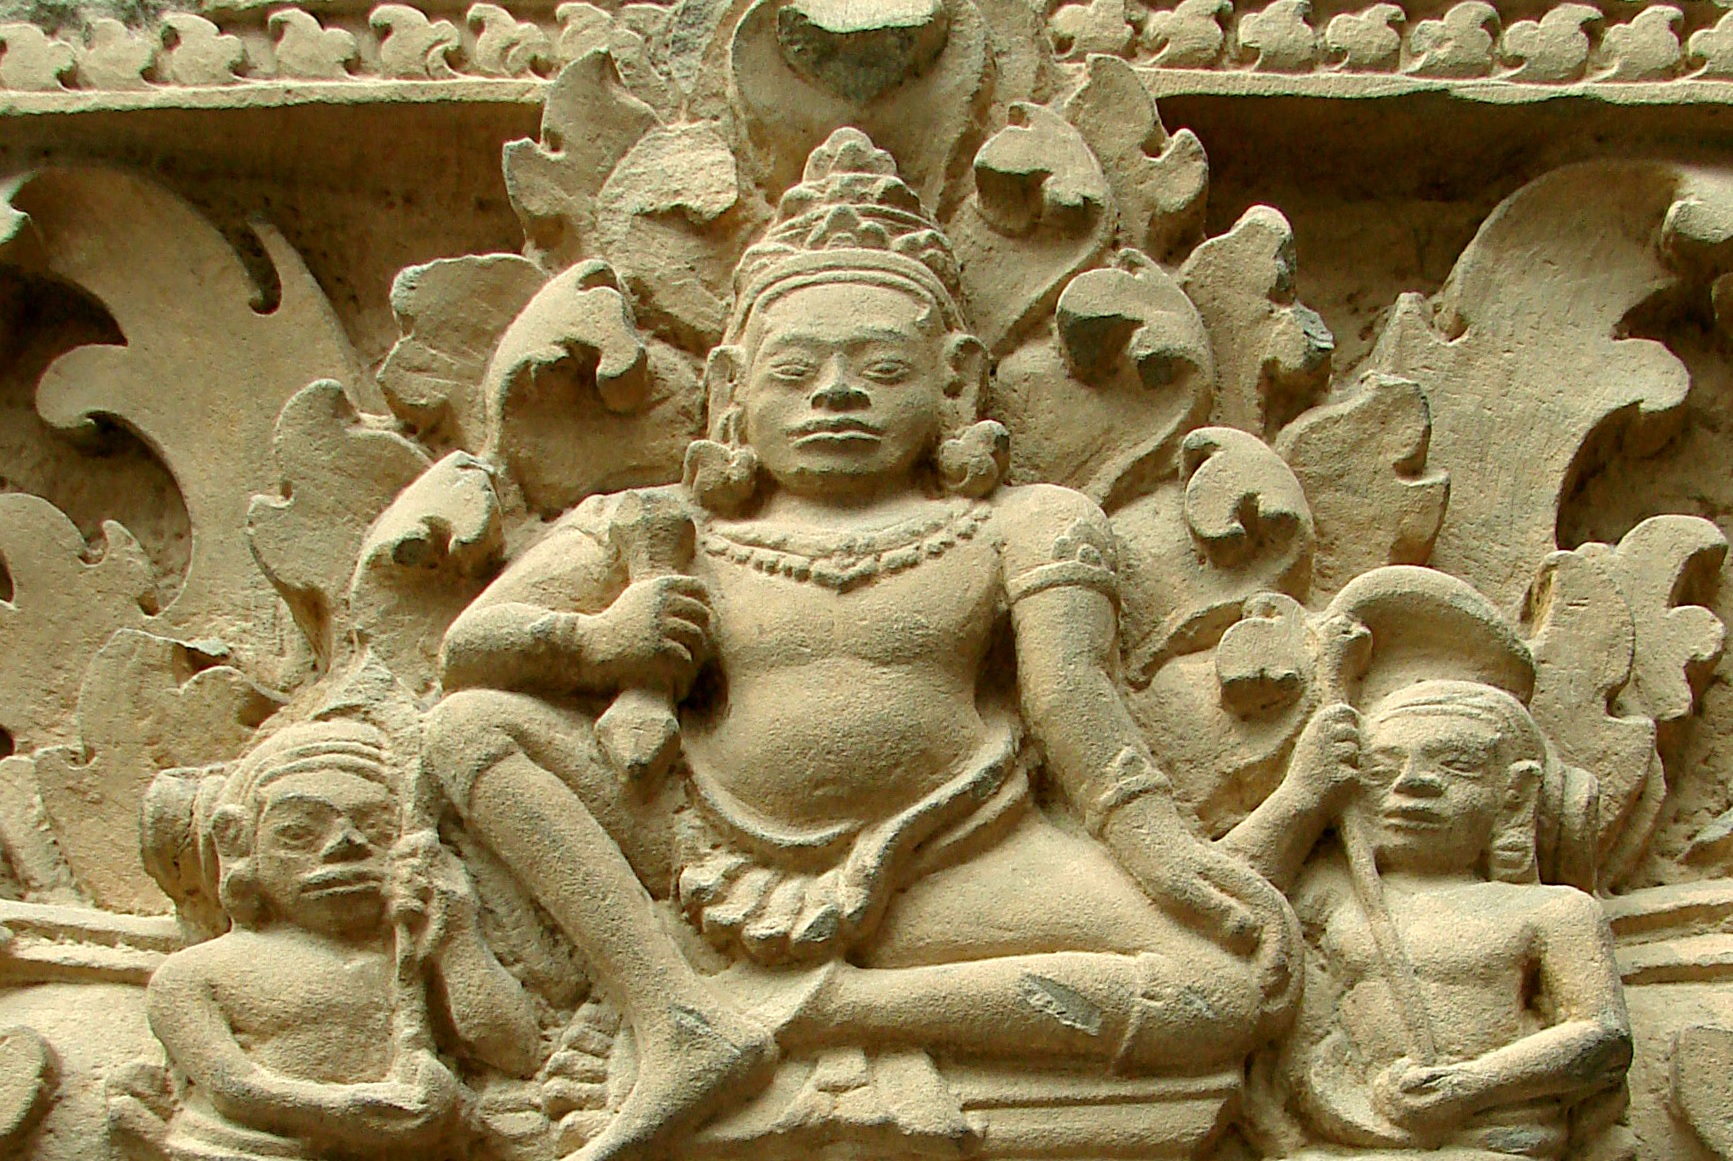 Ancient Cambodian city's intensive land use led to extensive environmental impacts